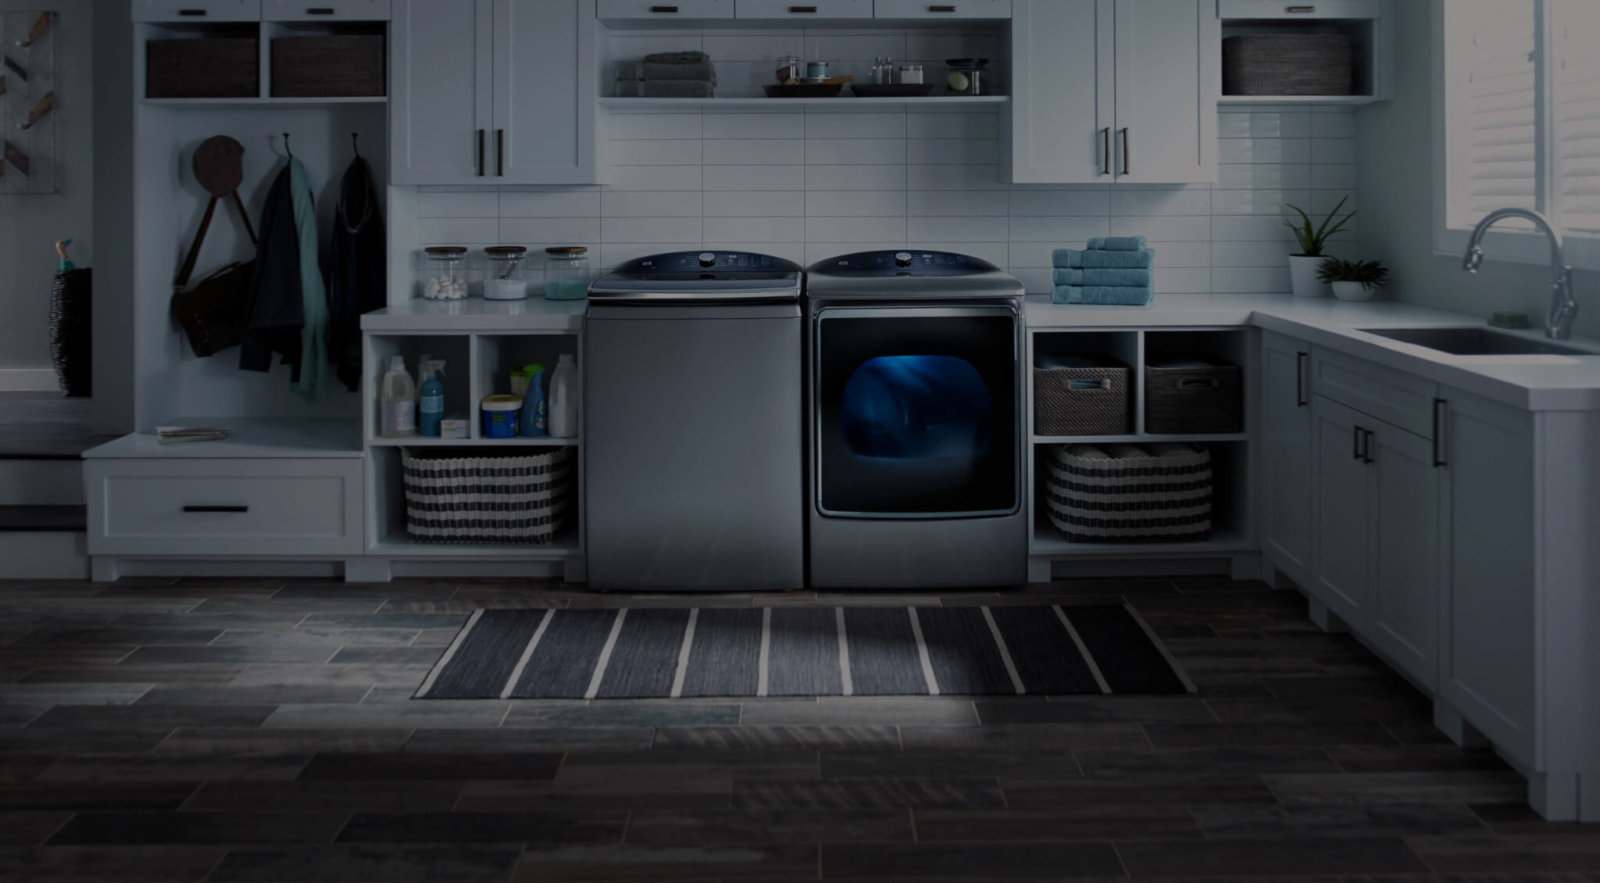 Kenmore, a home appliances brand that has been present in the lives of over 100 million Americans for 100 years, uses Spree Commerce for its website